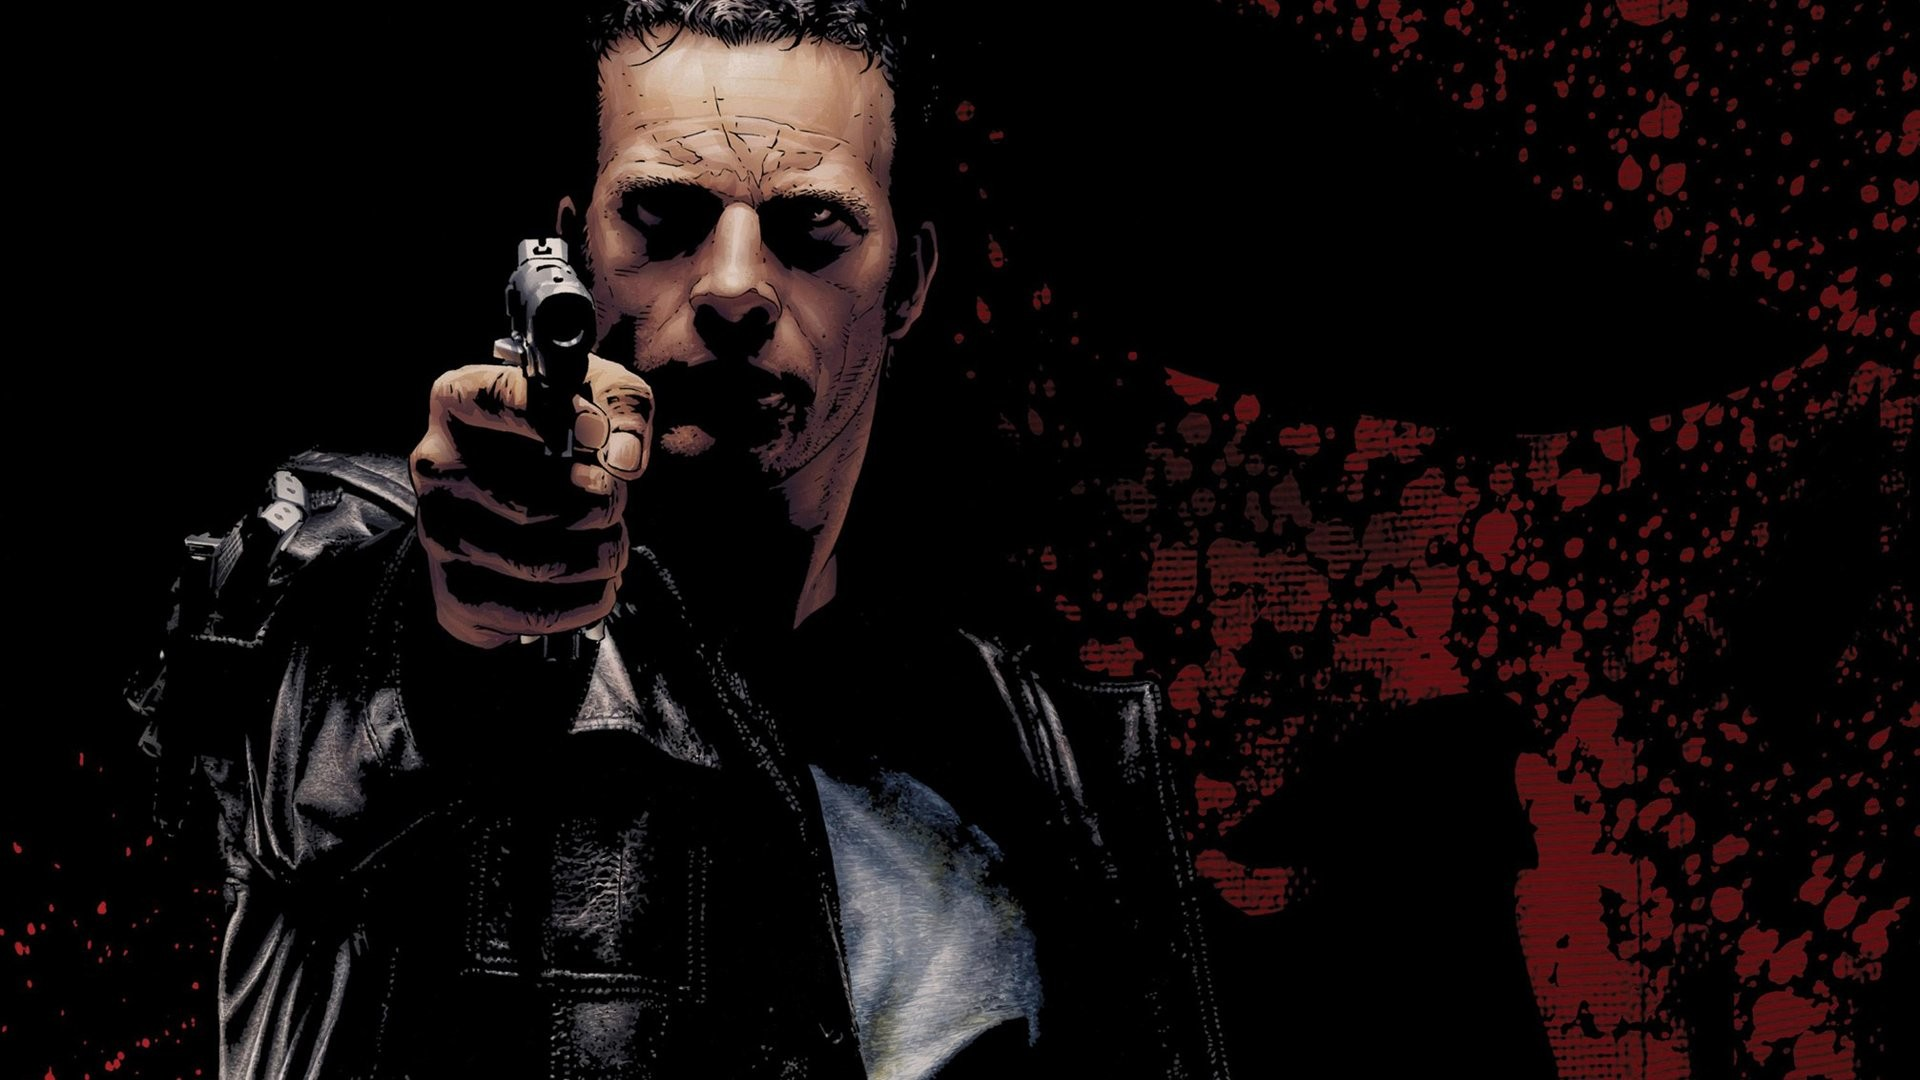 The Punisher Hd Wallpapers 68 Images